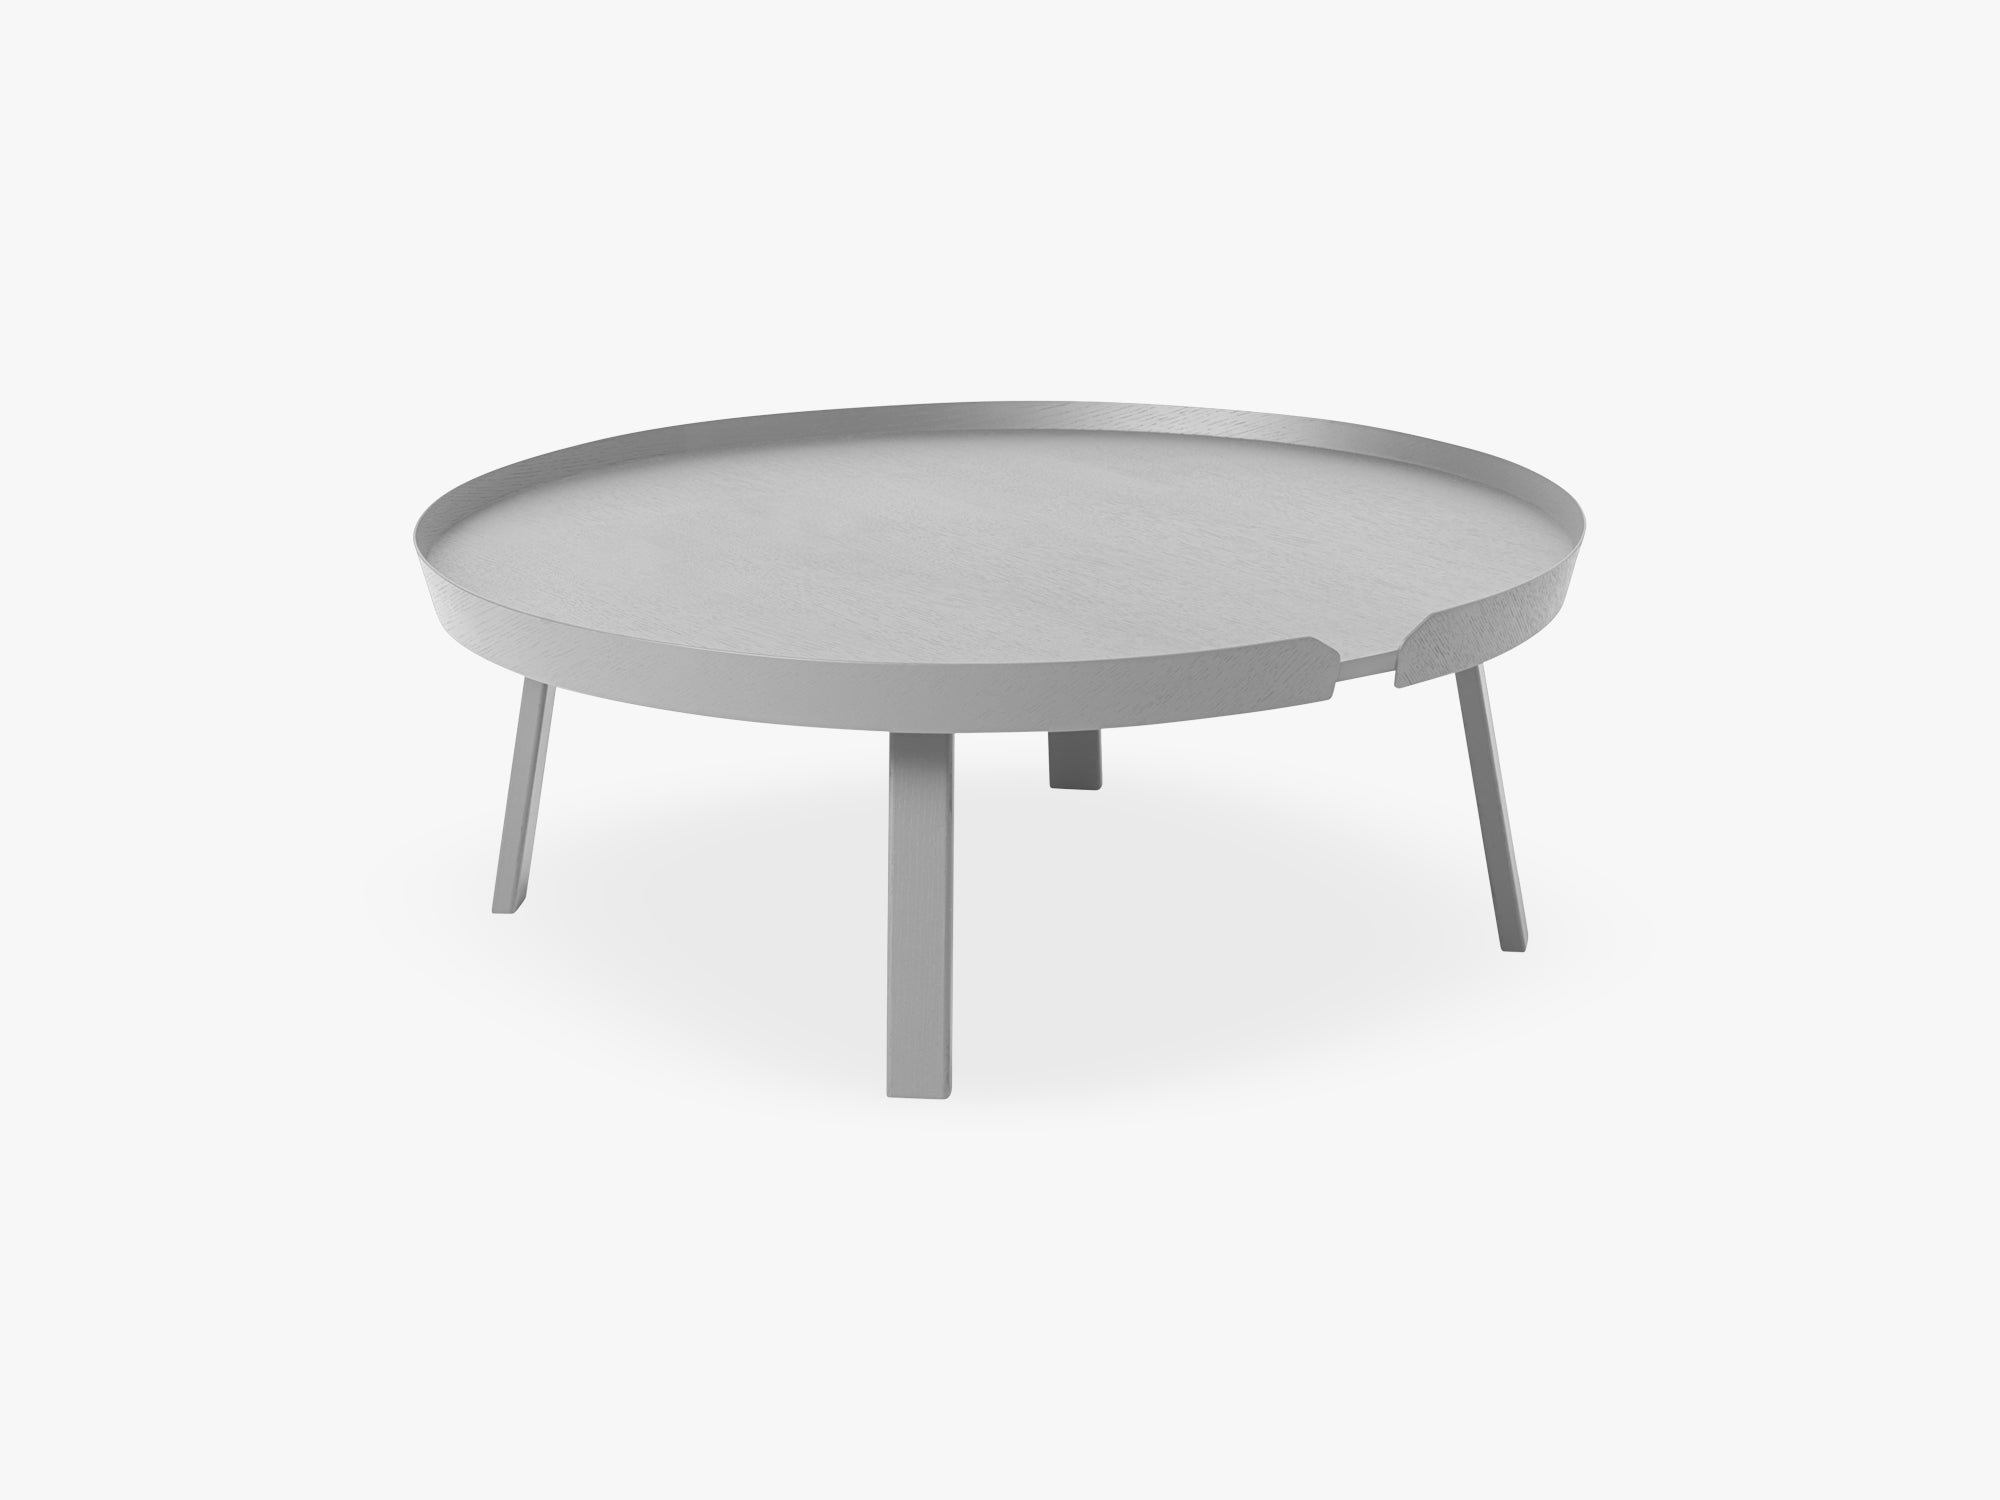 Around Coffee Table - Xl - Extra Large, Grey fra Muuto